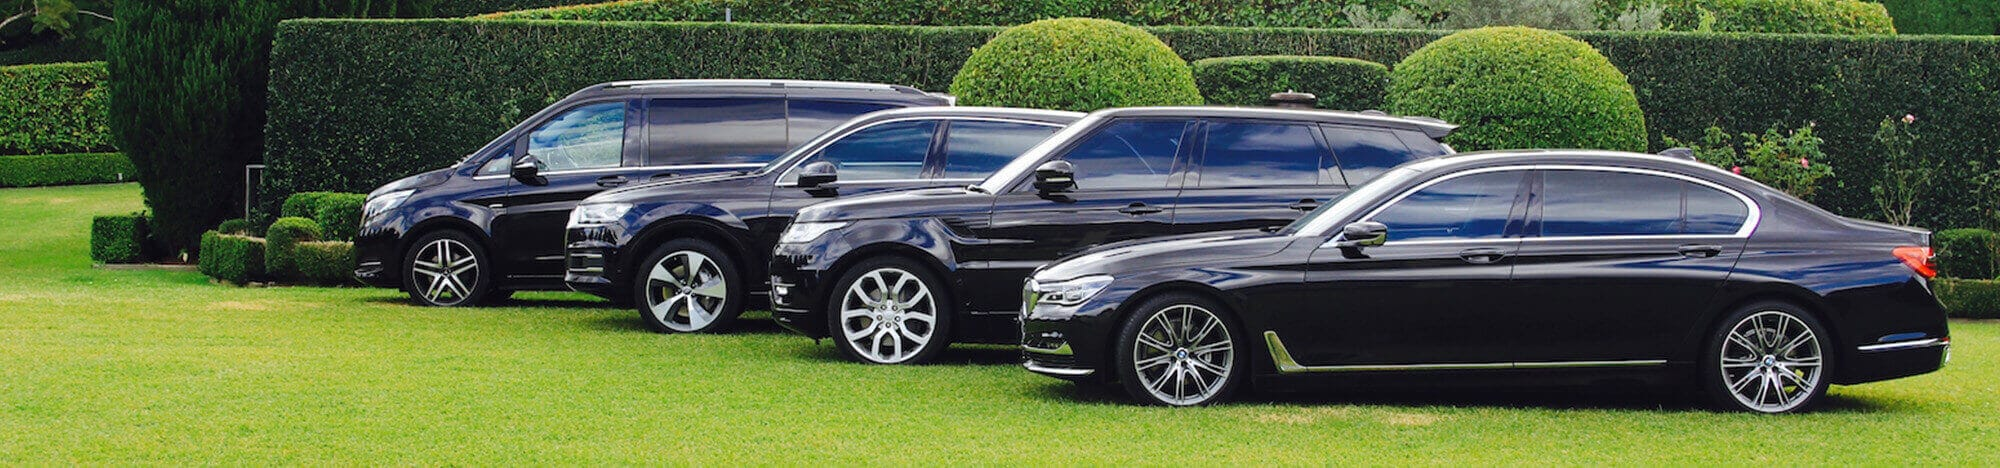 Luxury Car Fleet Australia & New Zealand | Marquee Limousines